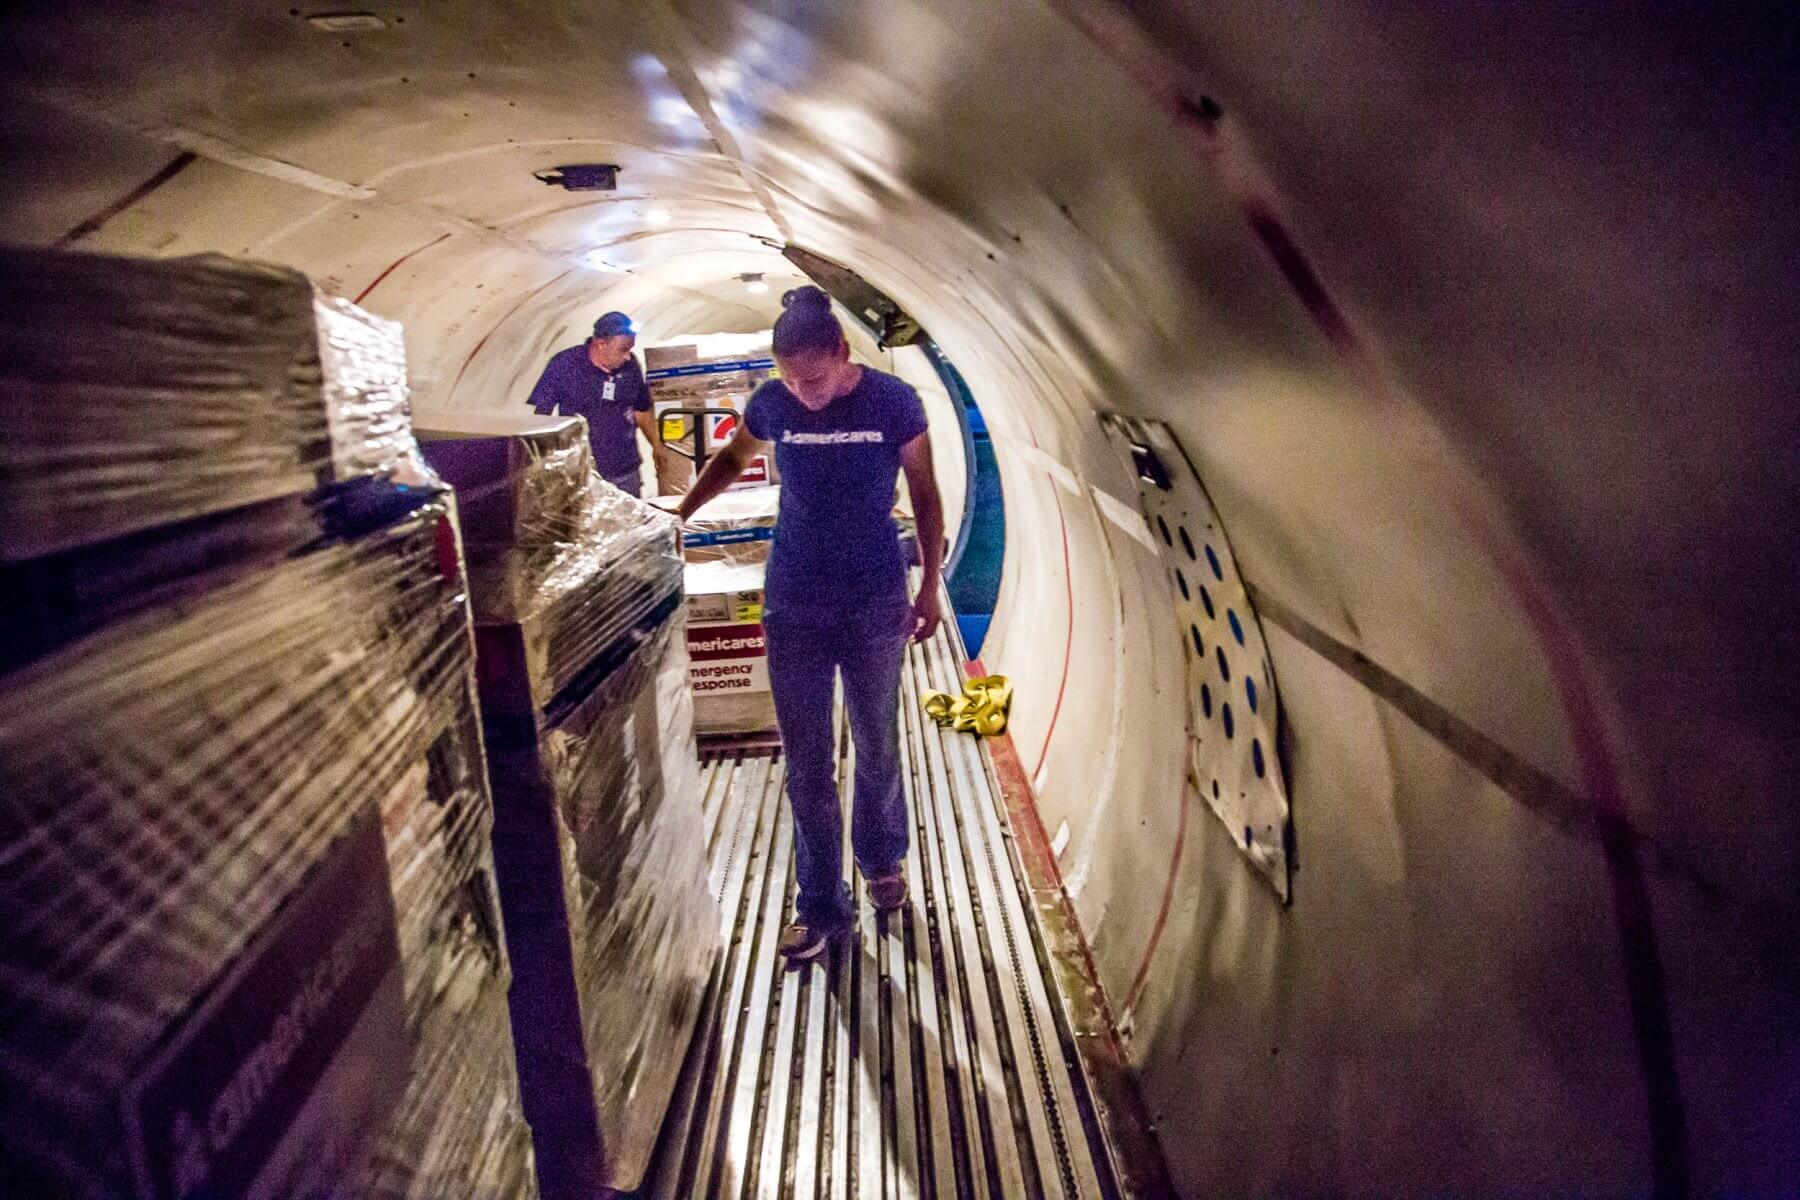 Photo of two Americares workers in the cargo hold of a plane with pallets of supplies.